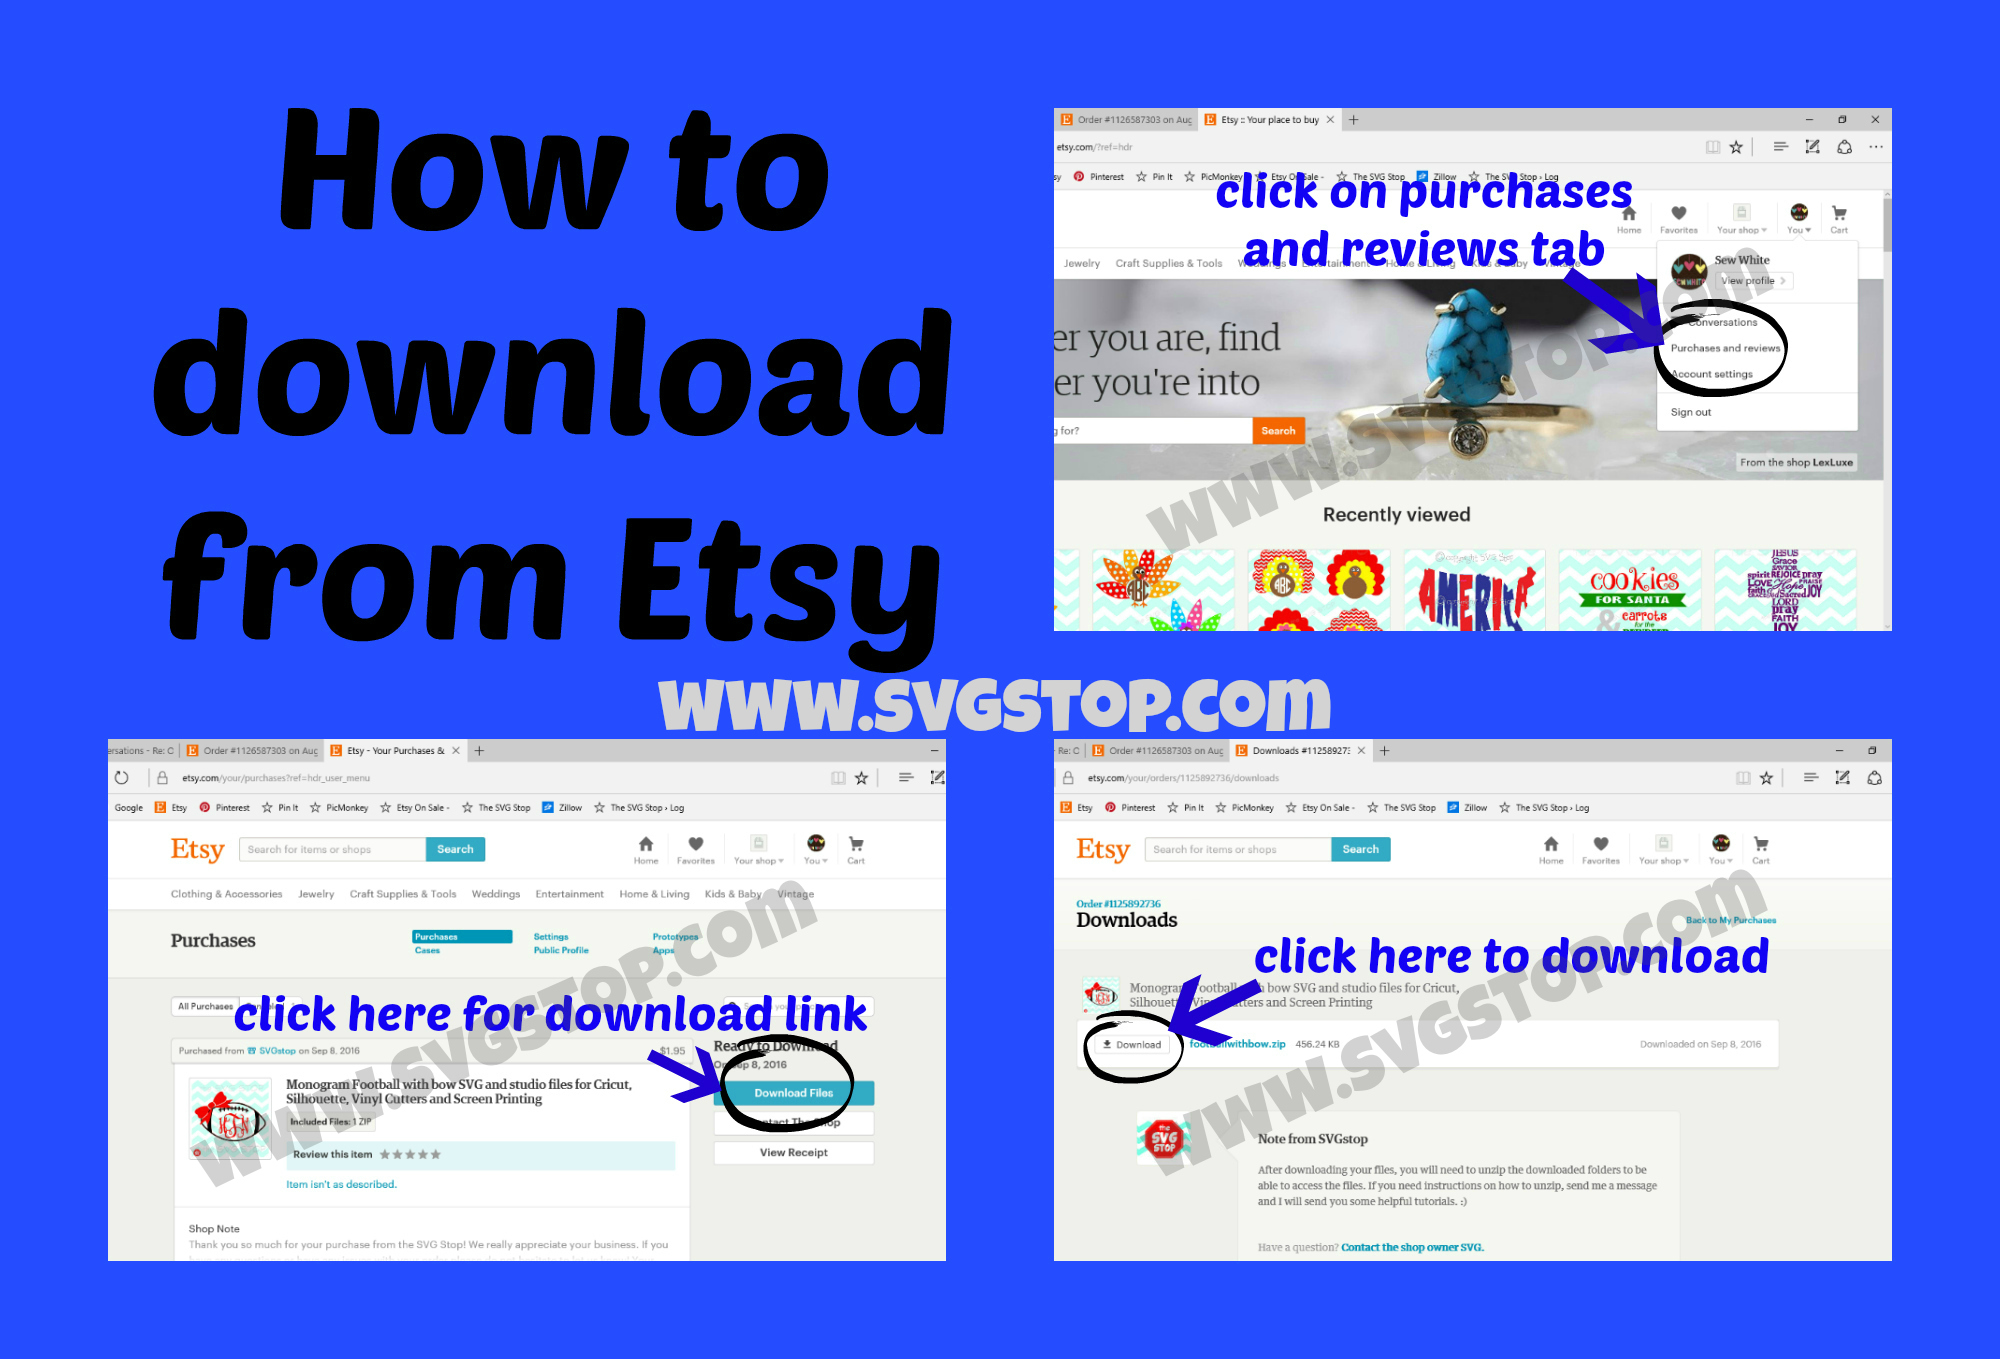 00download-from-etsy02.jpg